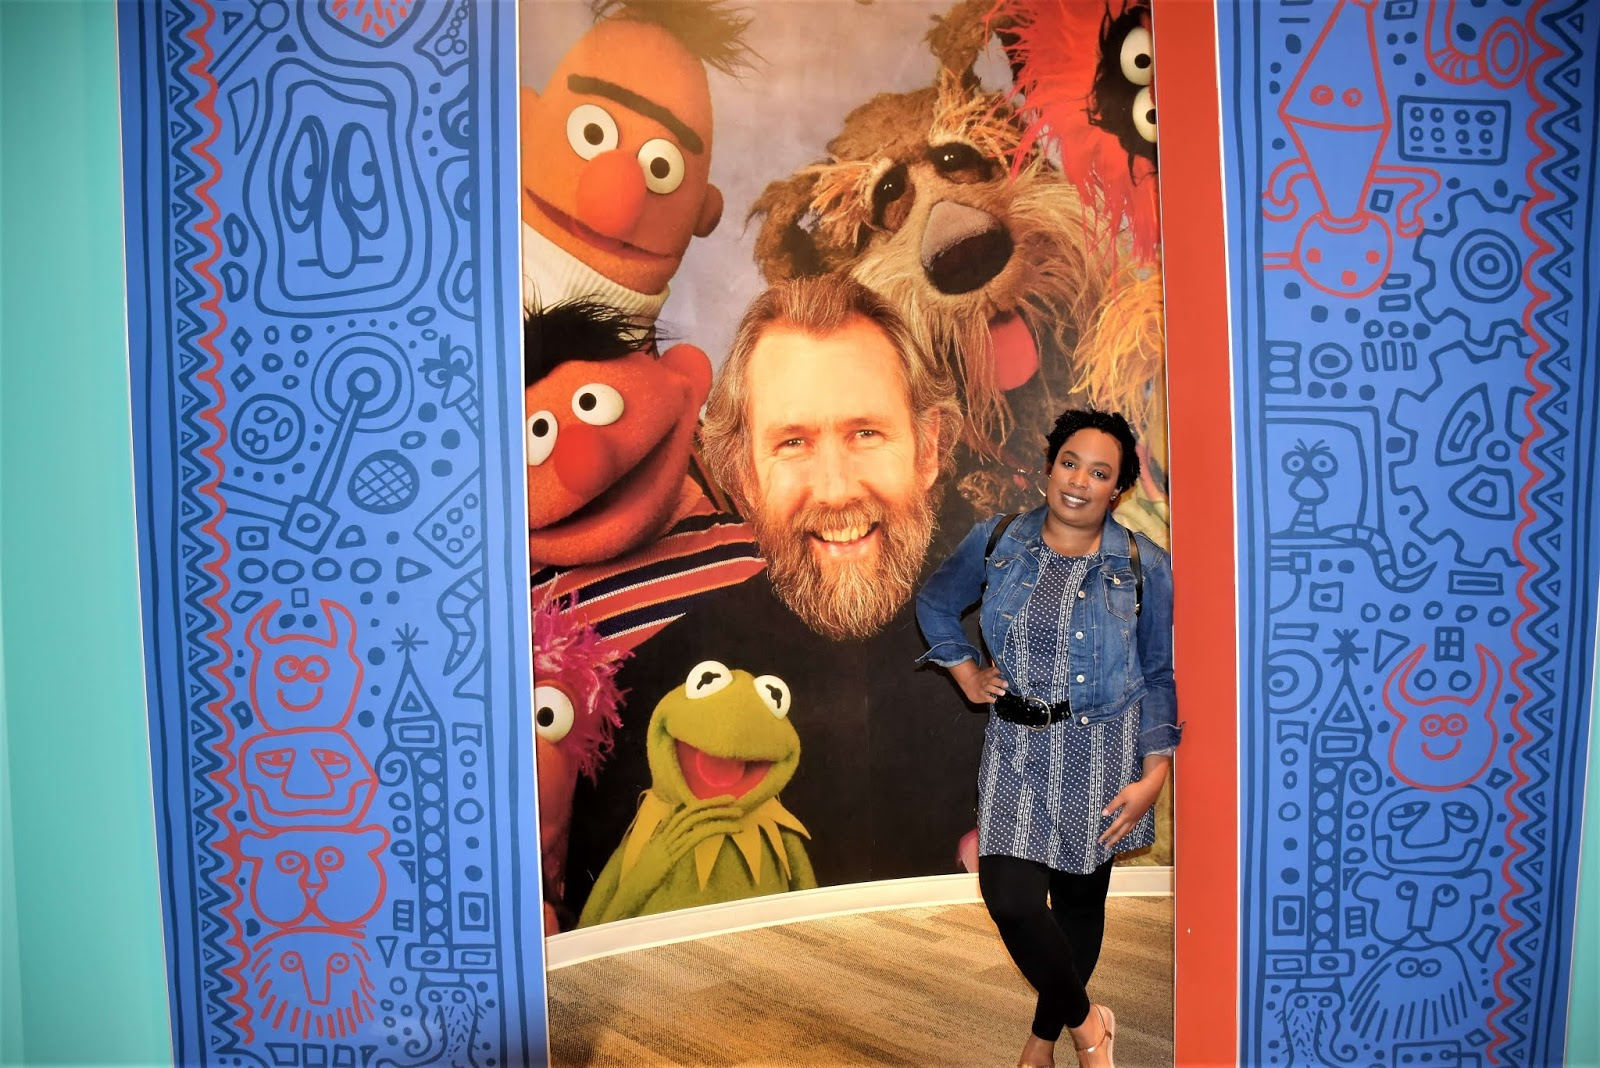 Jim Henson Museum at Center for Puppetry Arts